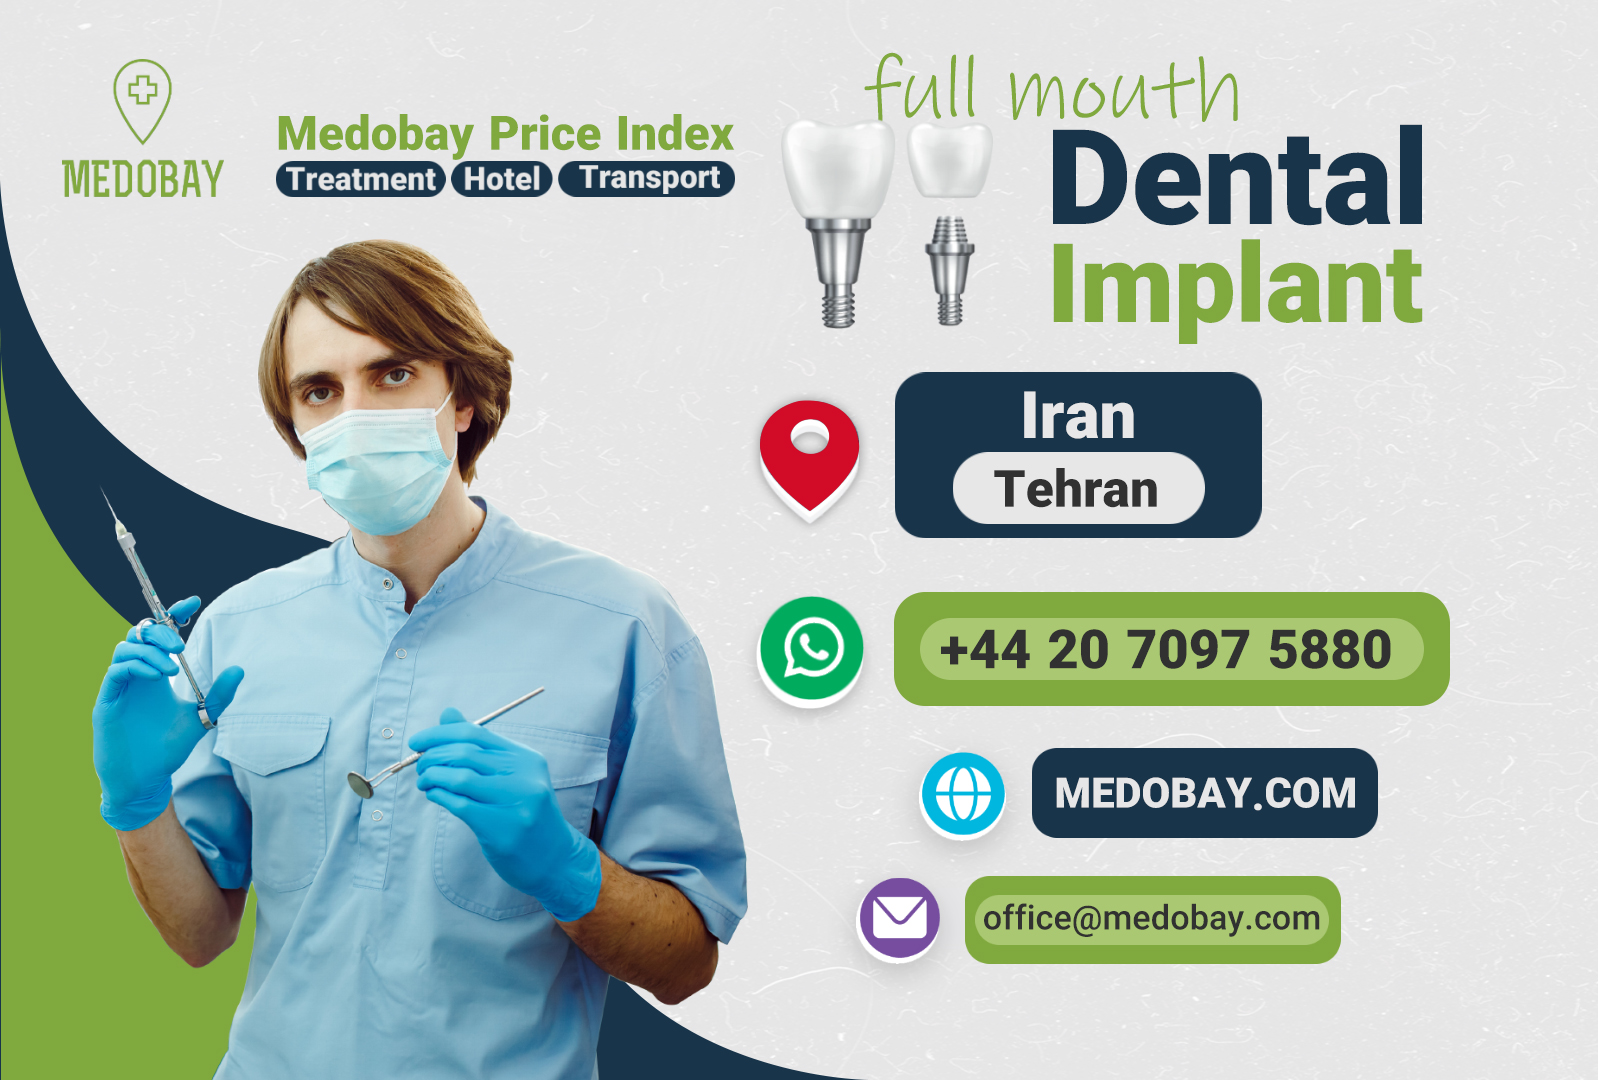 Full Mouth Dental Implant Tehran